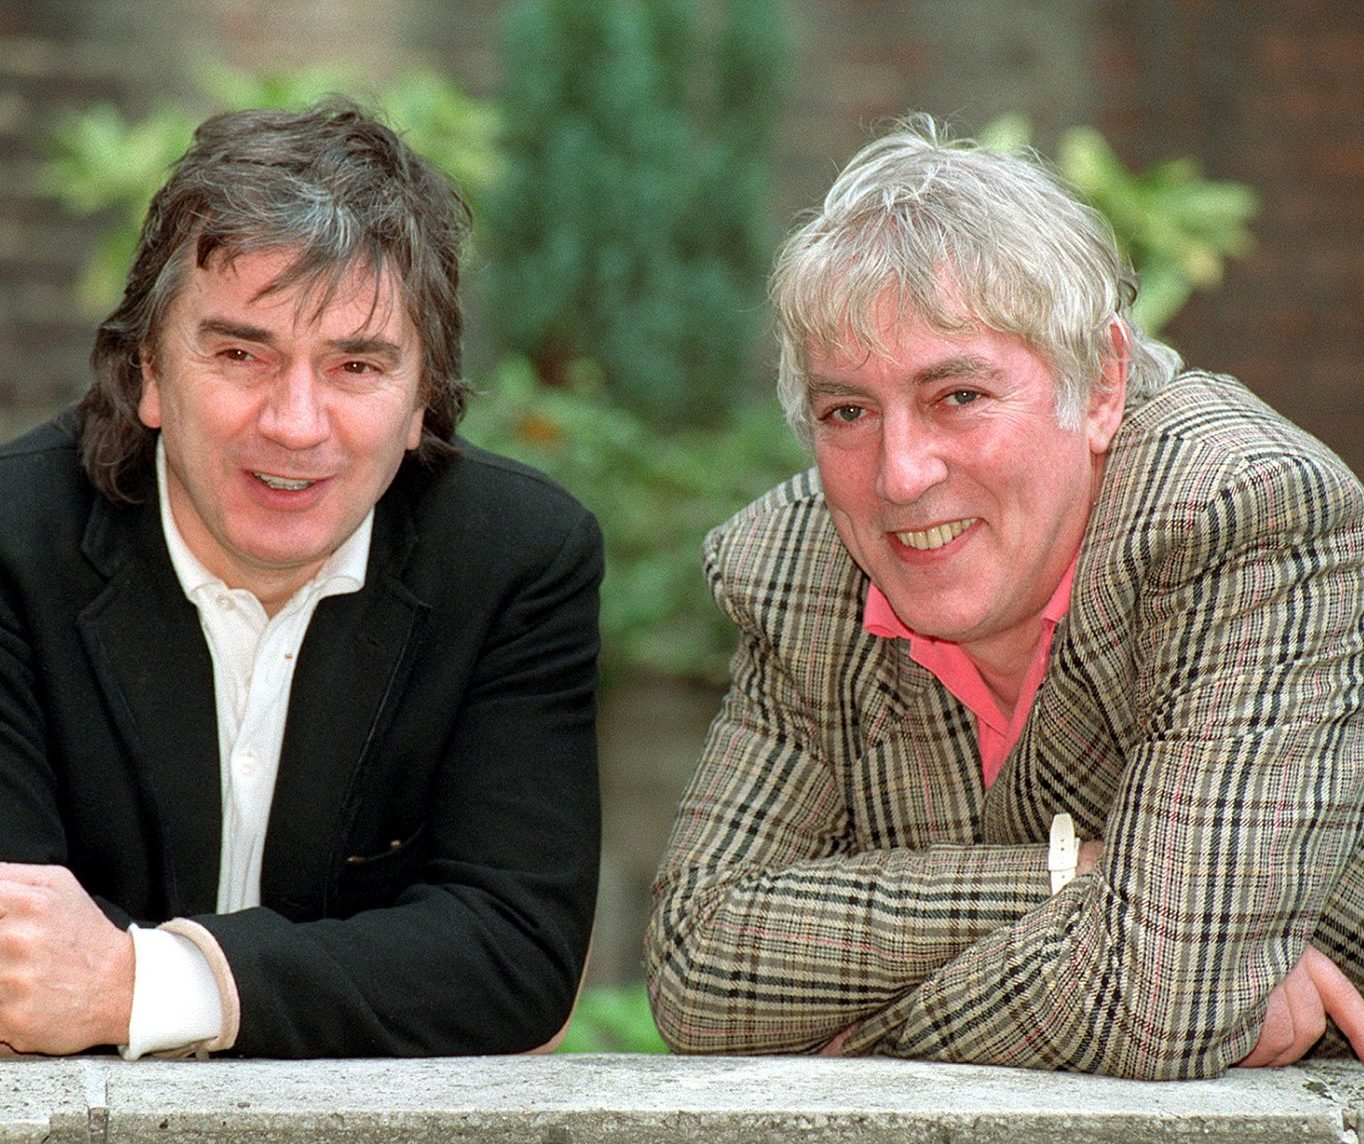 3A2C13EE00000578 0 image a 10 1478603540374 e1610113359318 20 Things You Never Knew About Dudley Moore